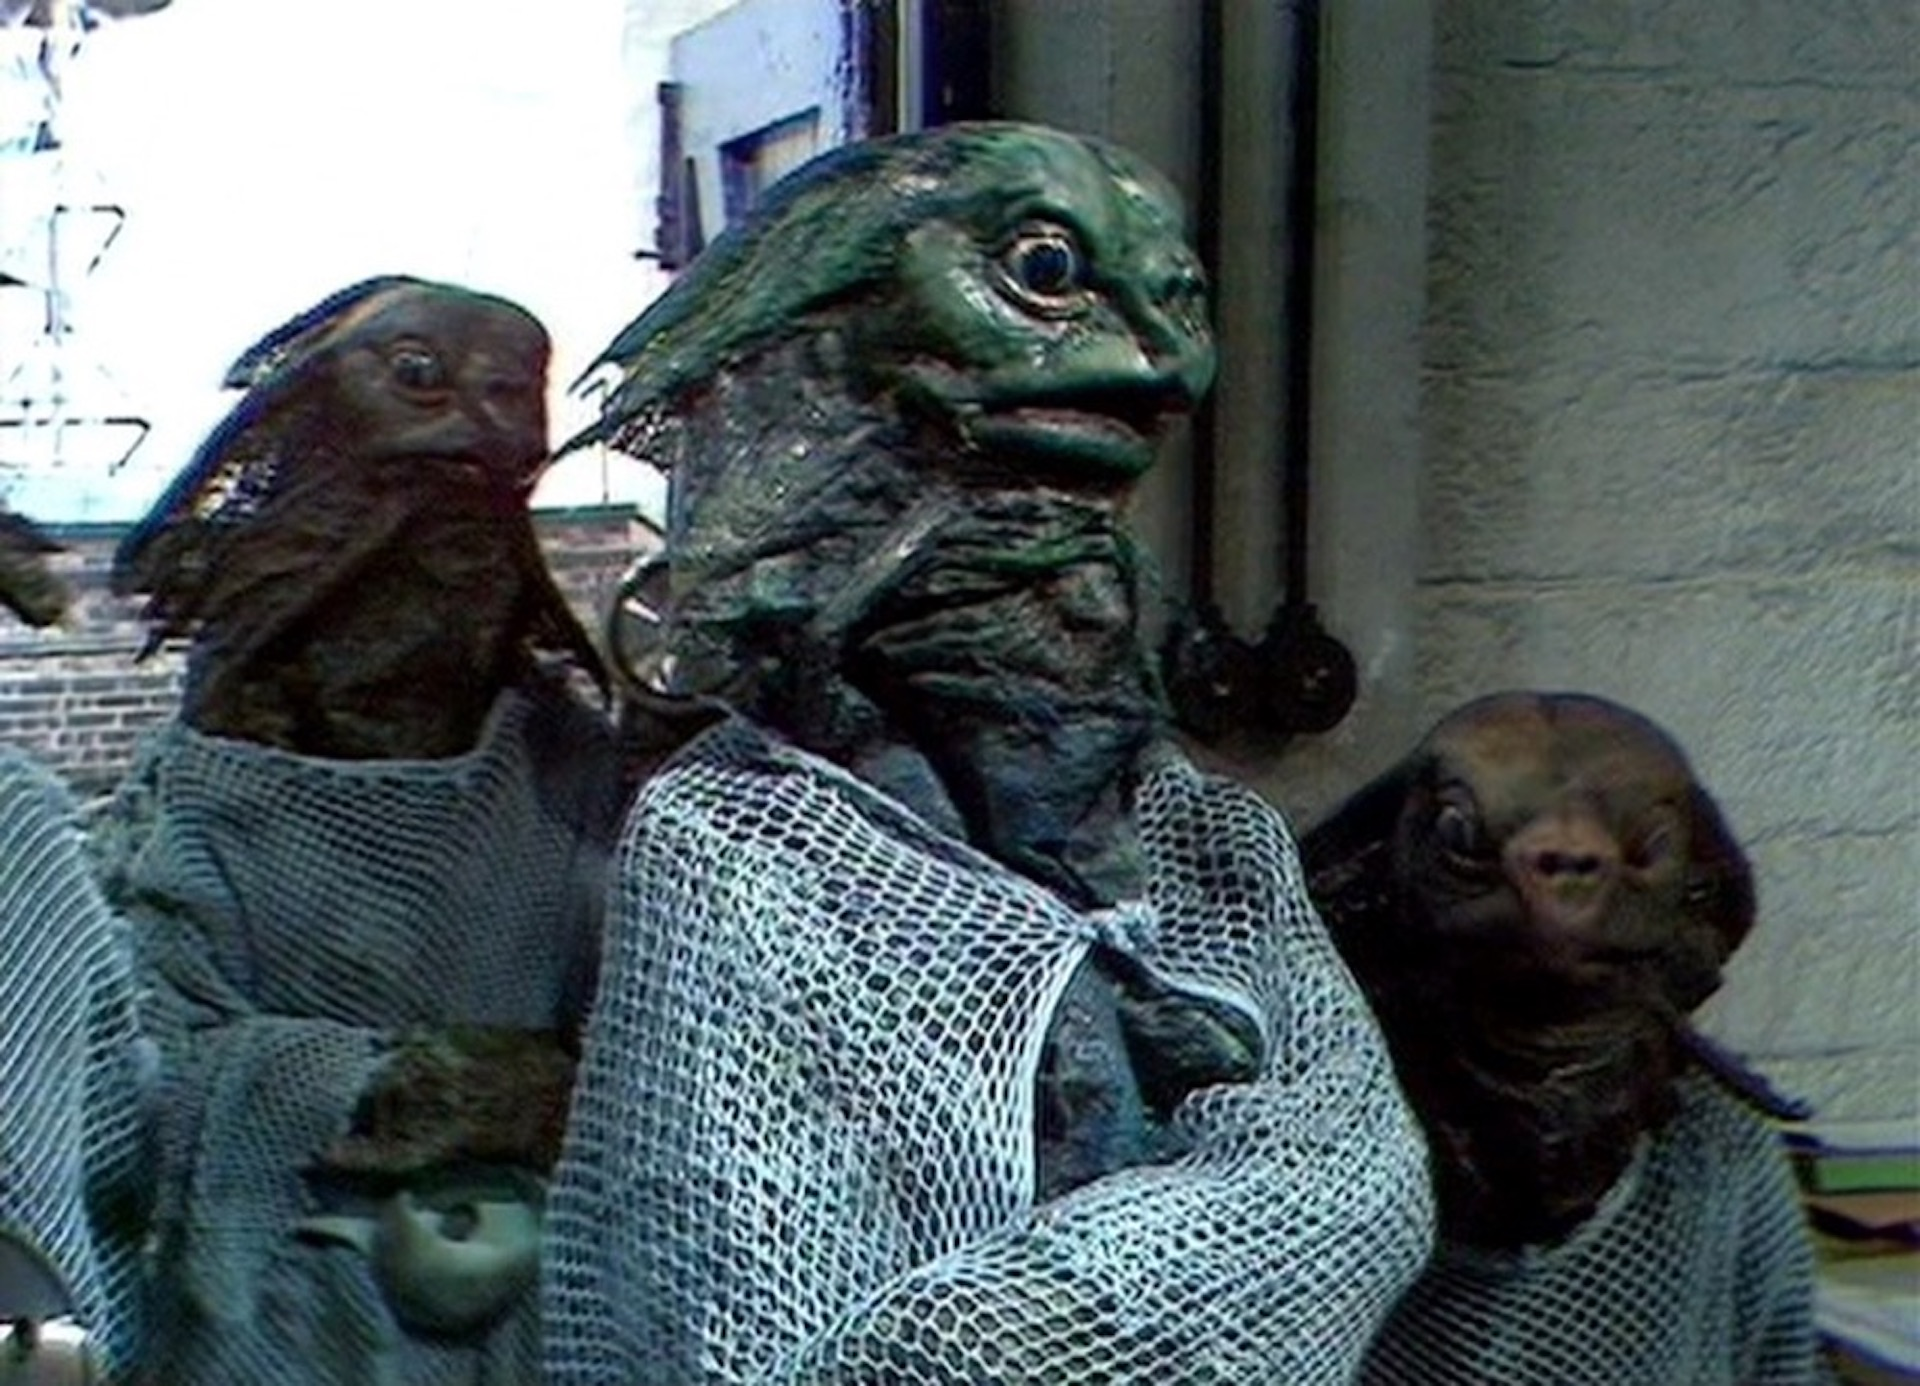 The Sea Devils